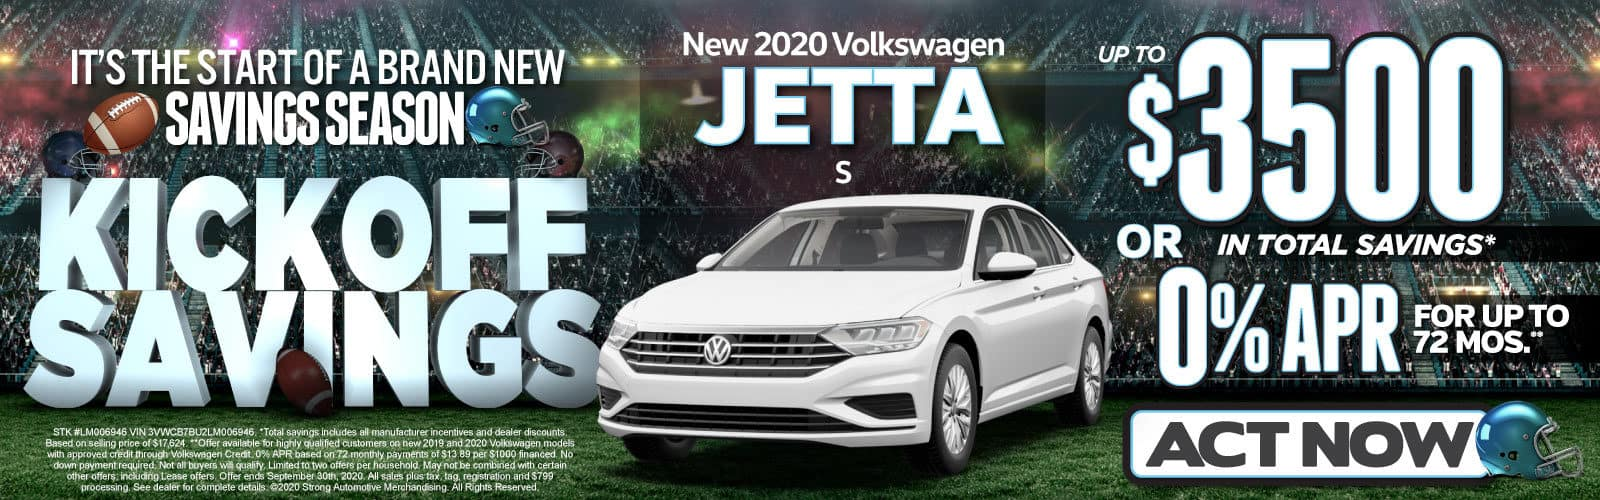 New 2020 VW Jetta - Up to $3500 in total savings - Act Now